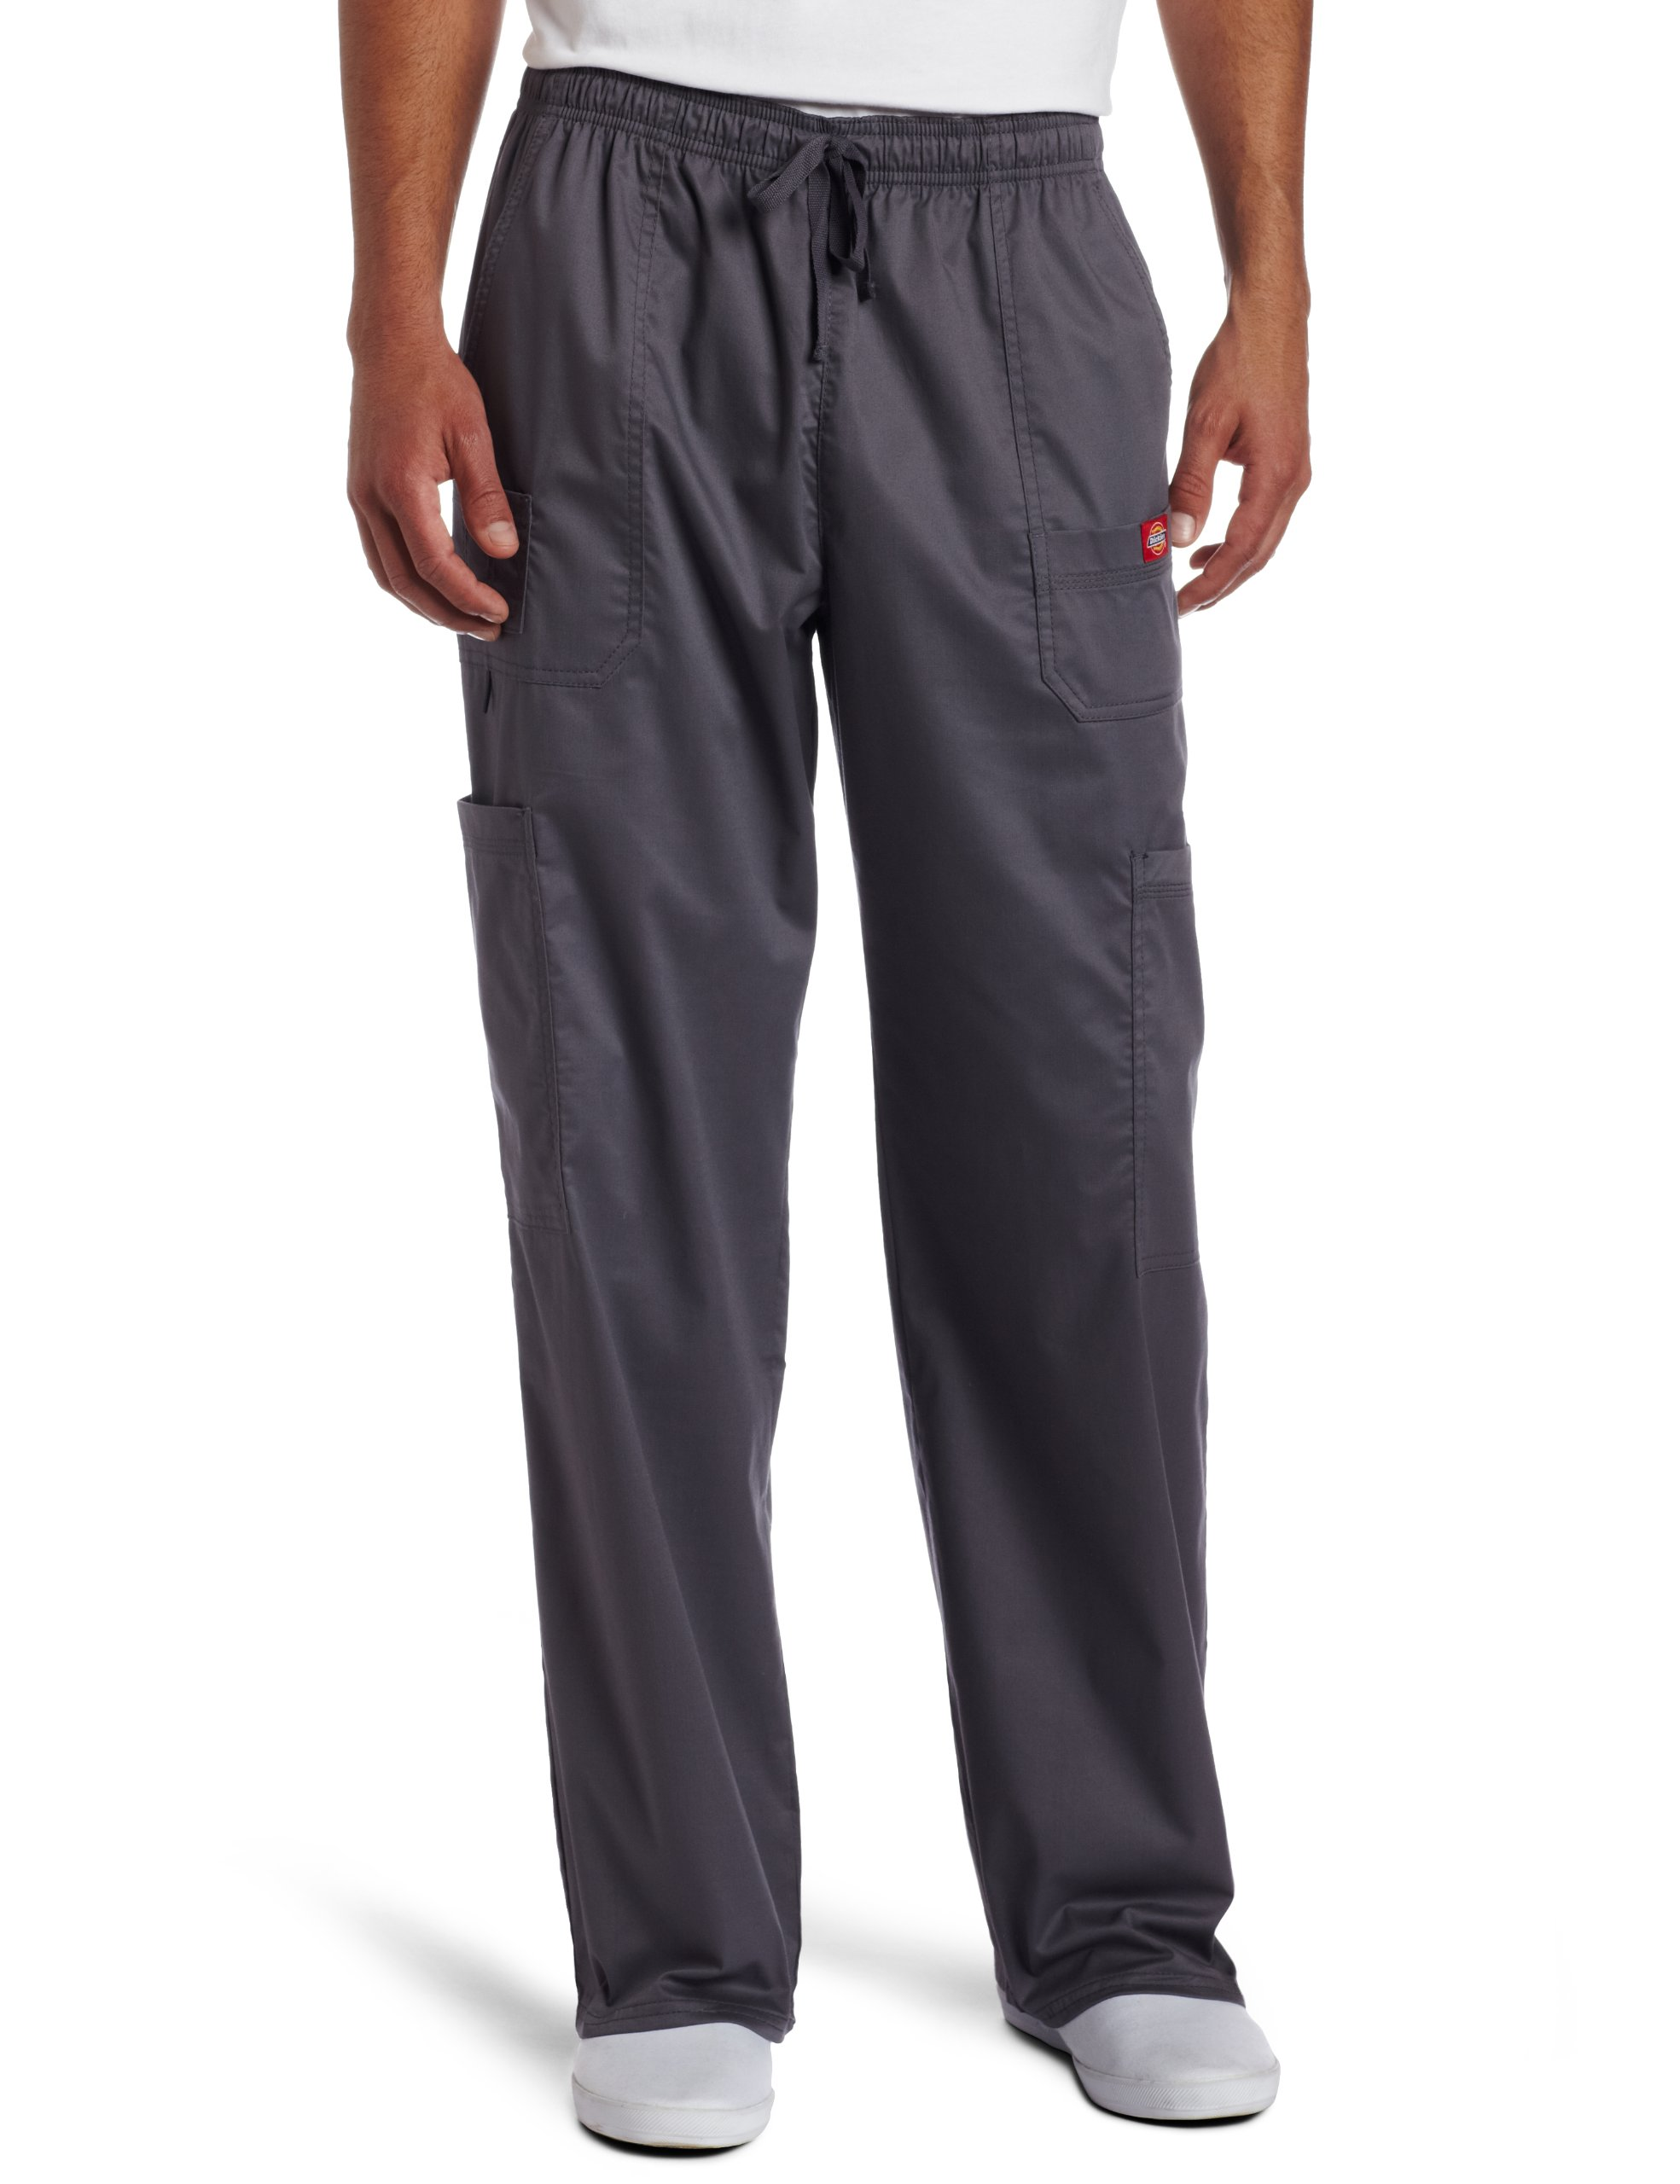 Dickies Generation Flex Men's Youtility Scrub Pants,Pewter,X-Large by Dickies (Image #1)